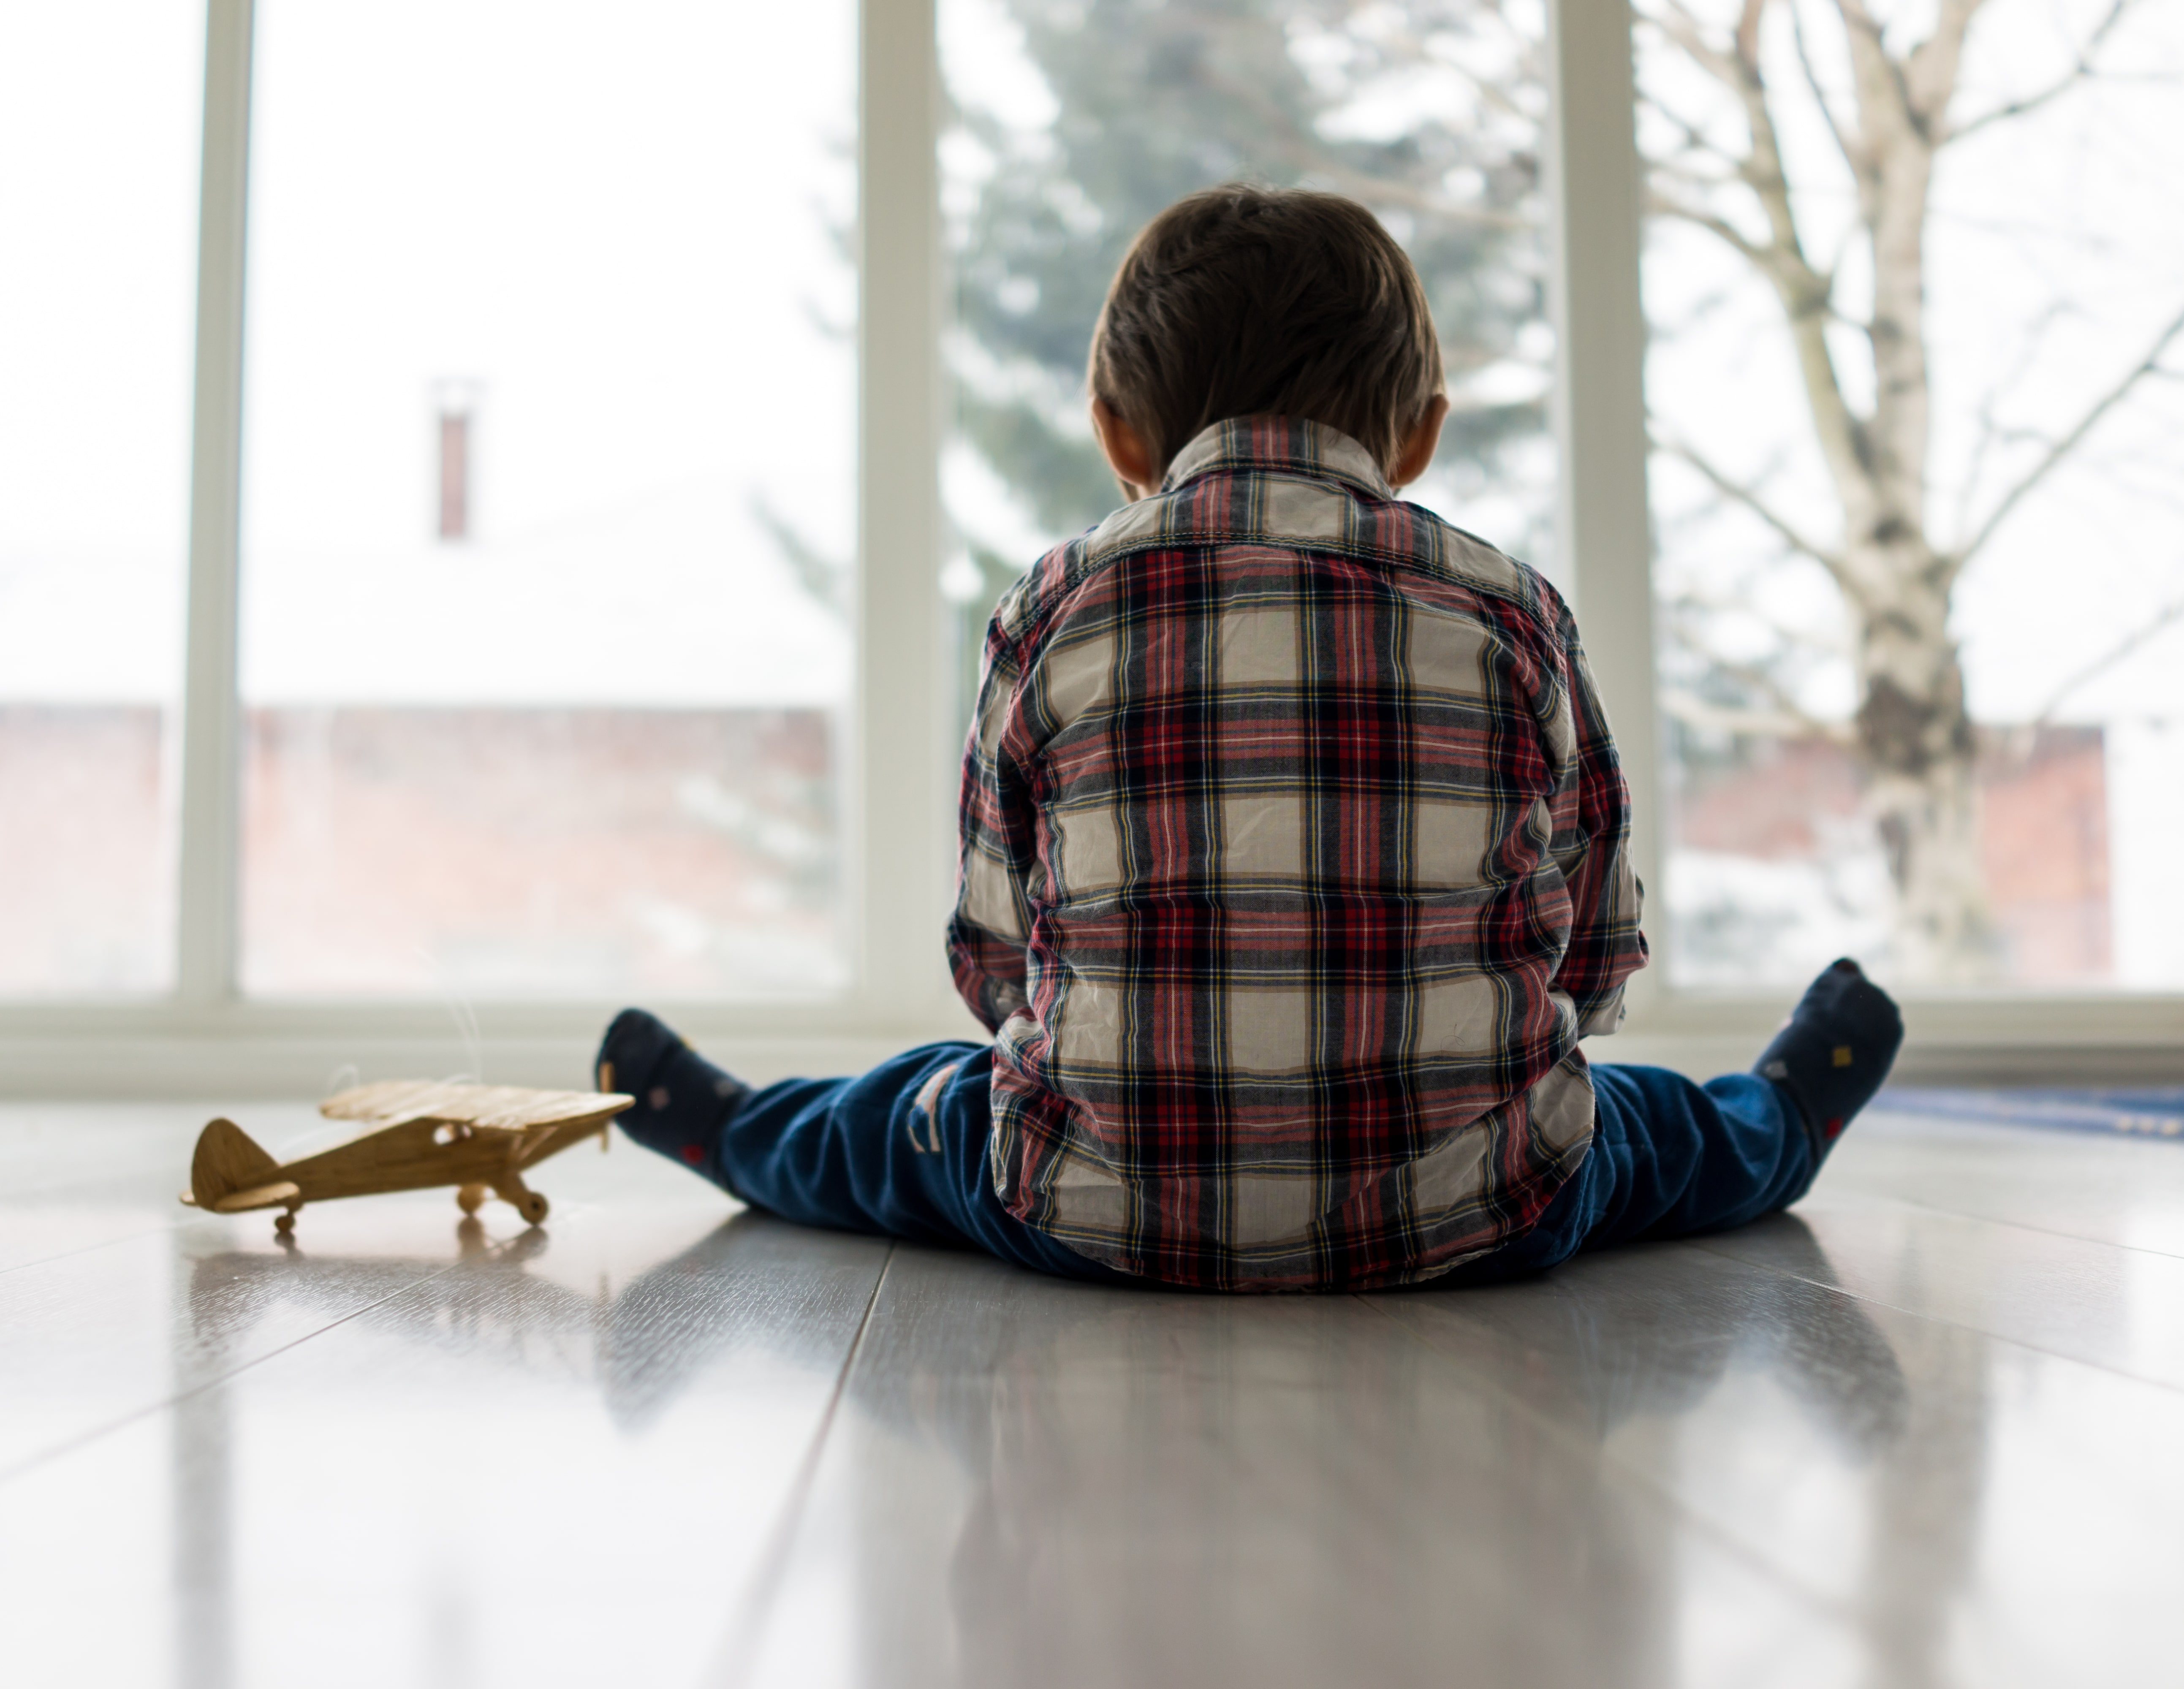 Umbilical cord stem cells as a potential treatment for autism